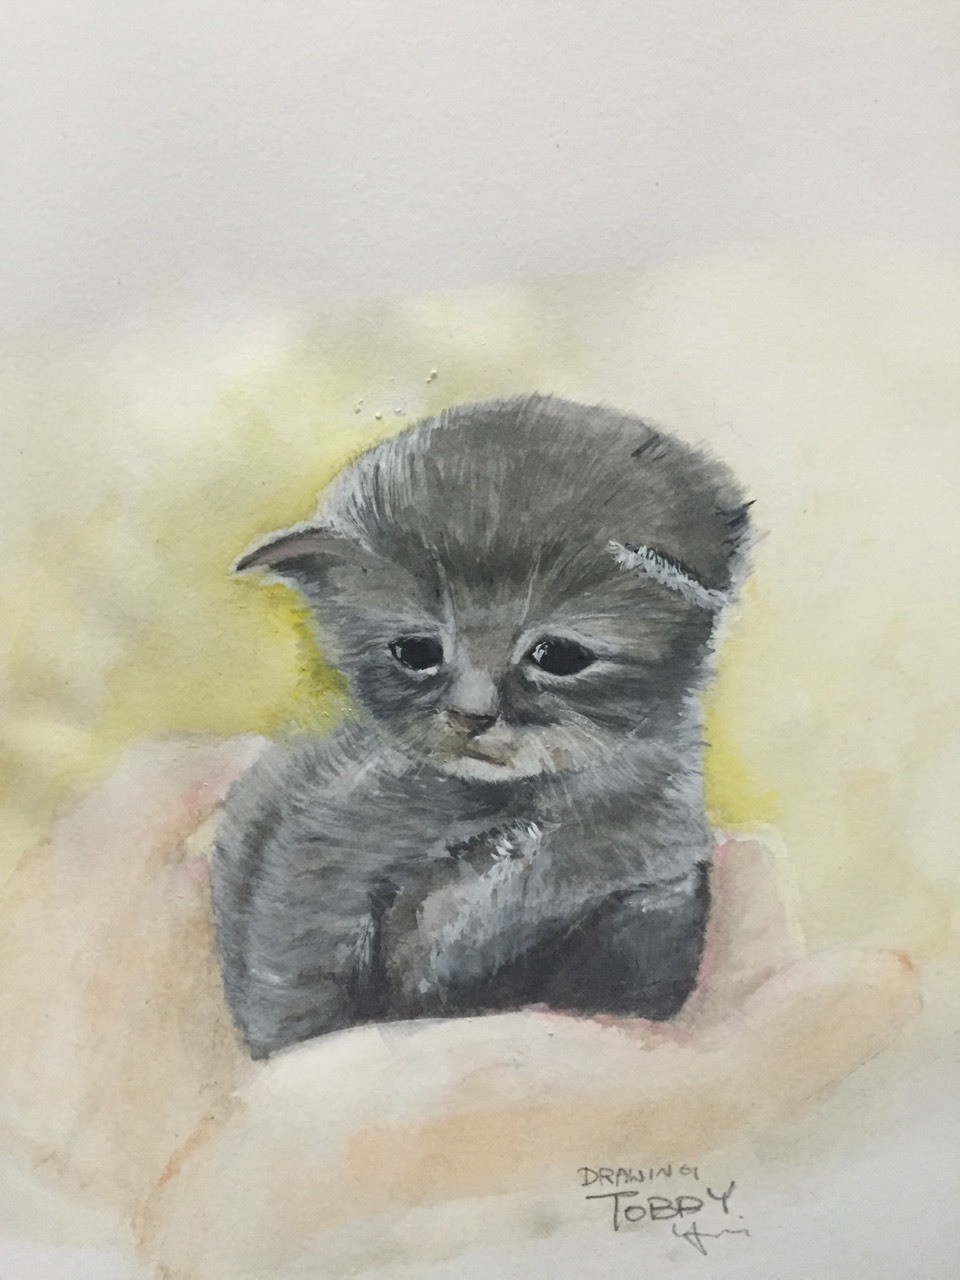 Name: please dont abandoned me Drawing by Tobby choi Watercolor I'm happy while you take me, but if one day, you leave me alone, I will feel so hurt.